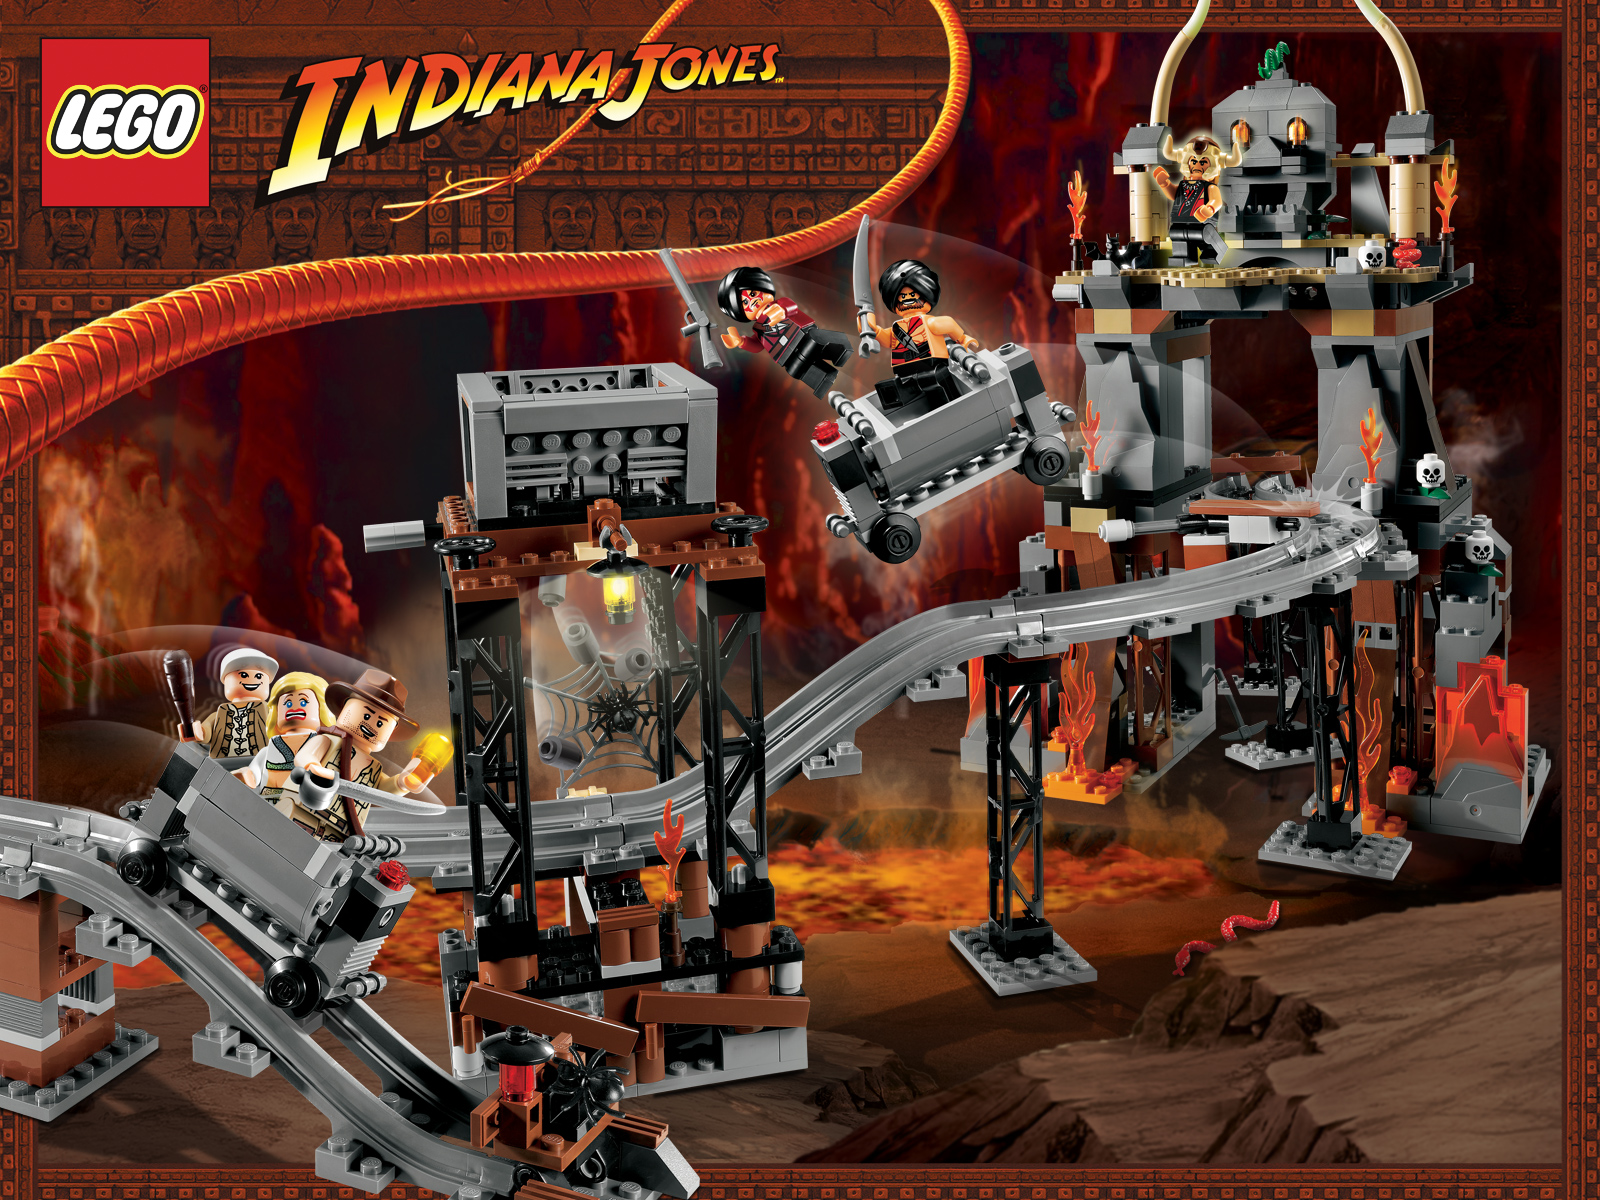 Free Download Lego Indiana Jones Lego Indiana Jones Xpx Lego Indiana Jones Lego 1600x1200 For Your Desktop Mobile Tablet Explore 44 Lego Indiana Jones Wallpapers Lego Indiana Jones Wallpapers